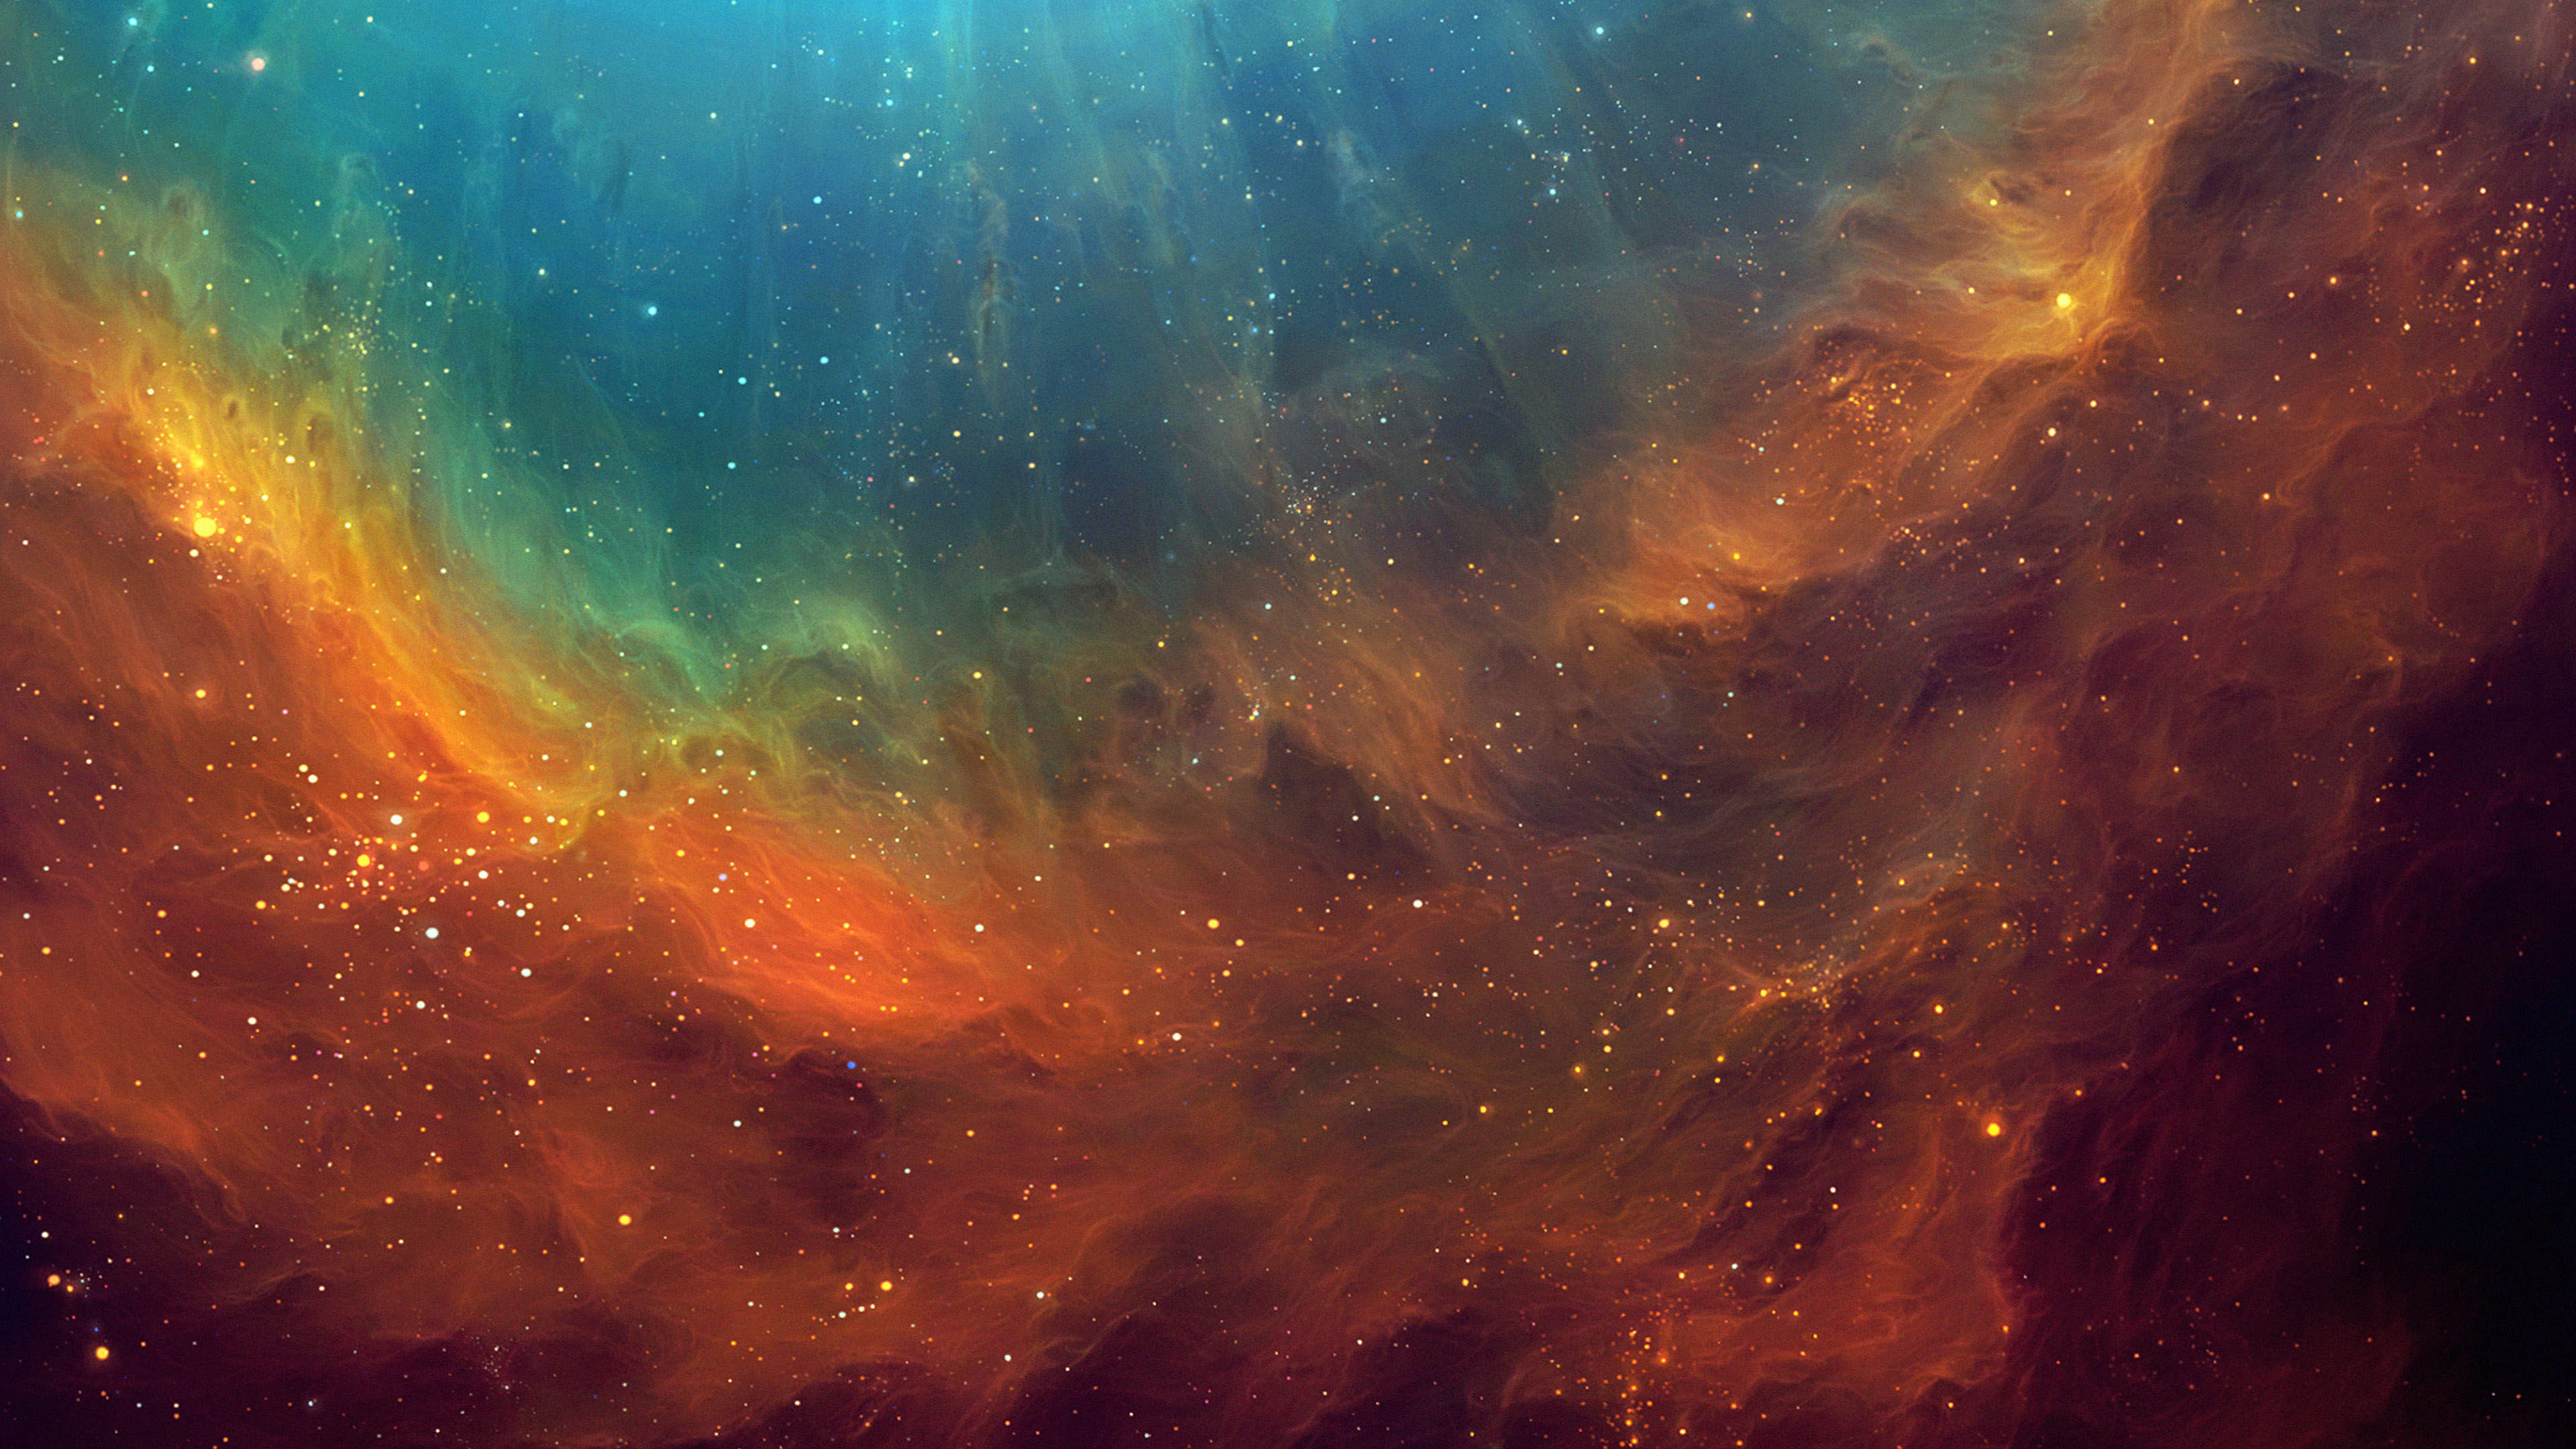 Windows Fall Wallpaper Md08 Wallpaper Galaxy Eye Space Stars Color Papers Co